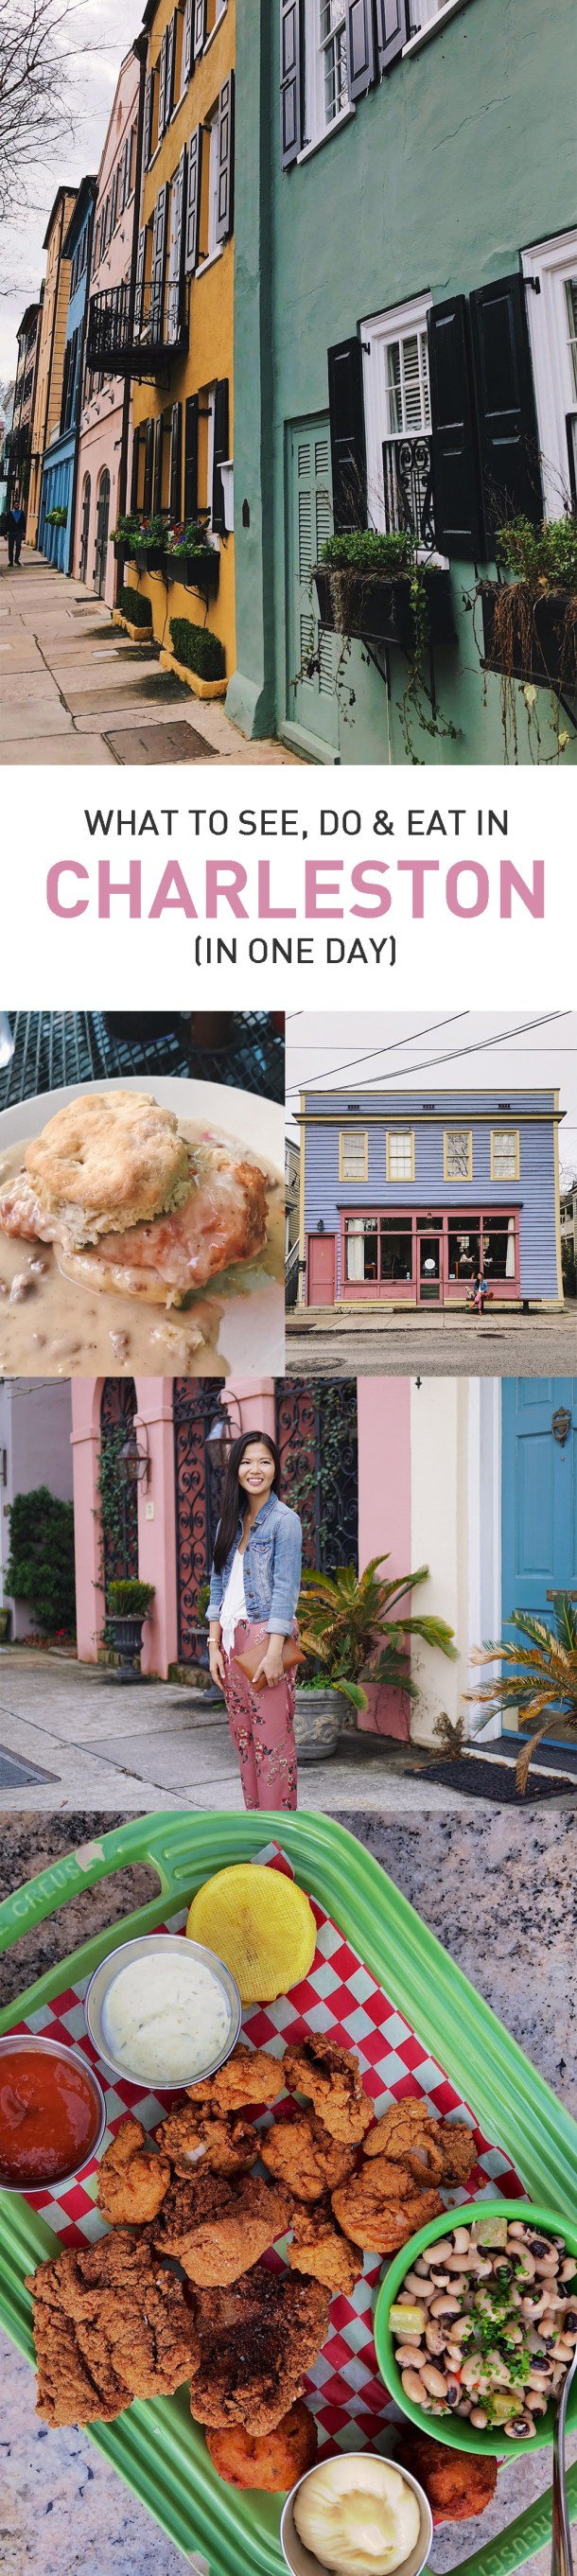 One Day Travel Guide to Charleston, South Carolina